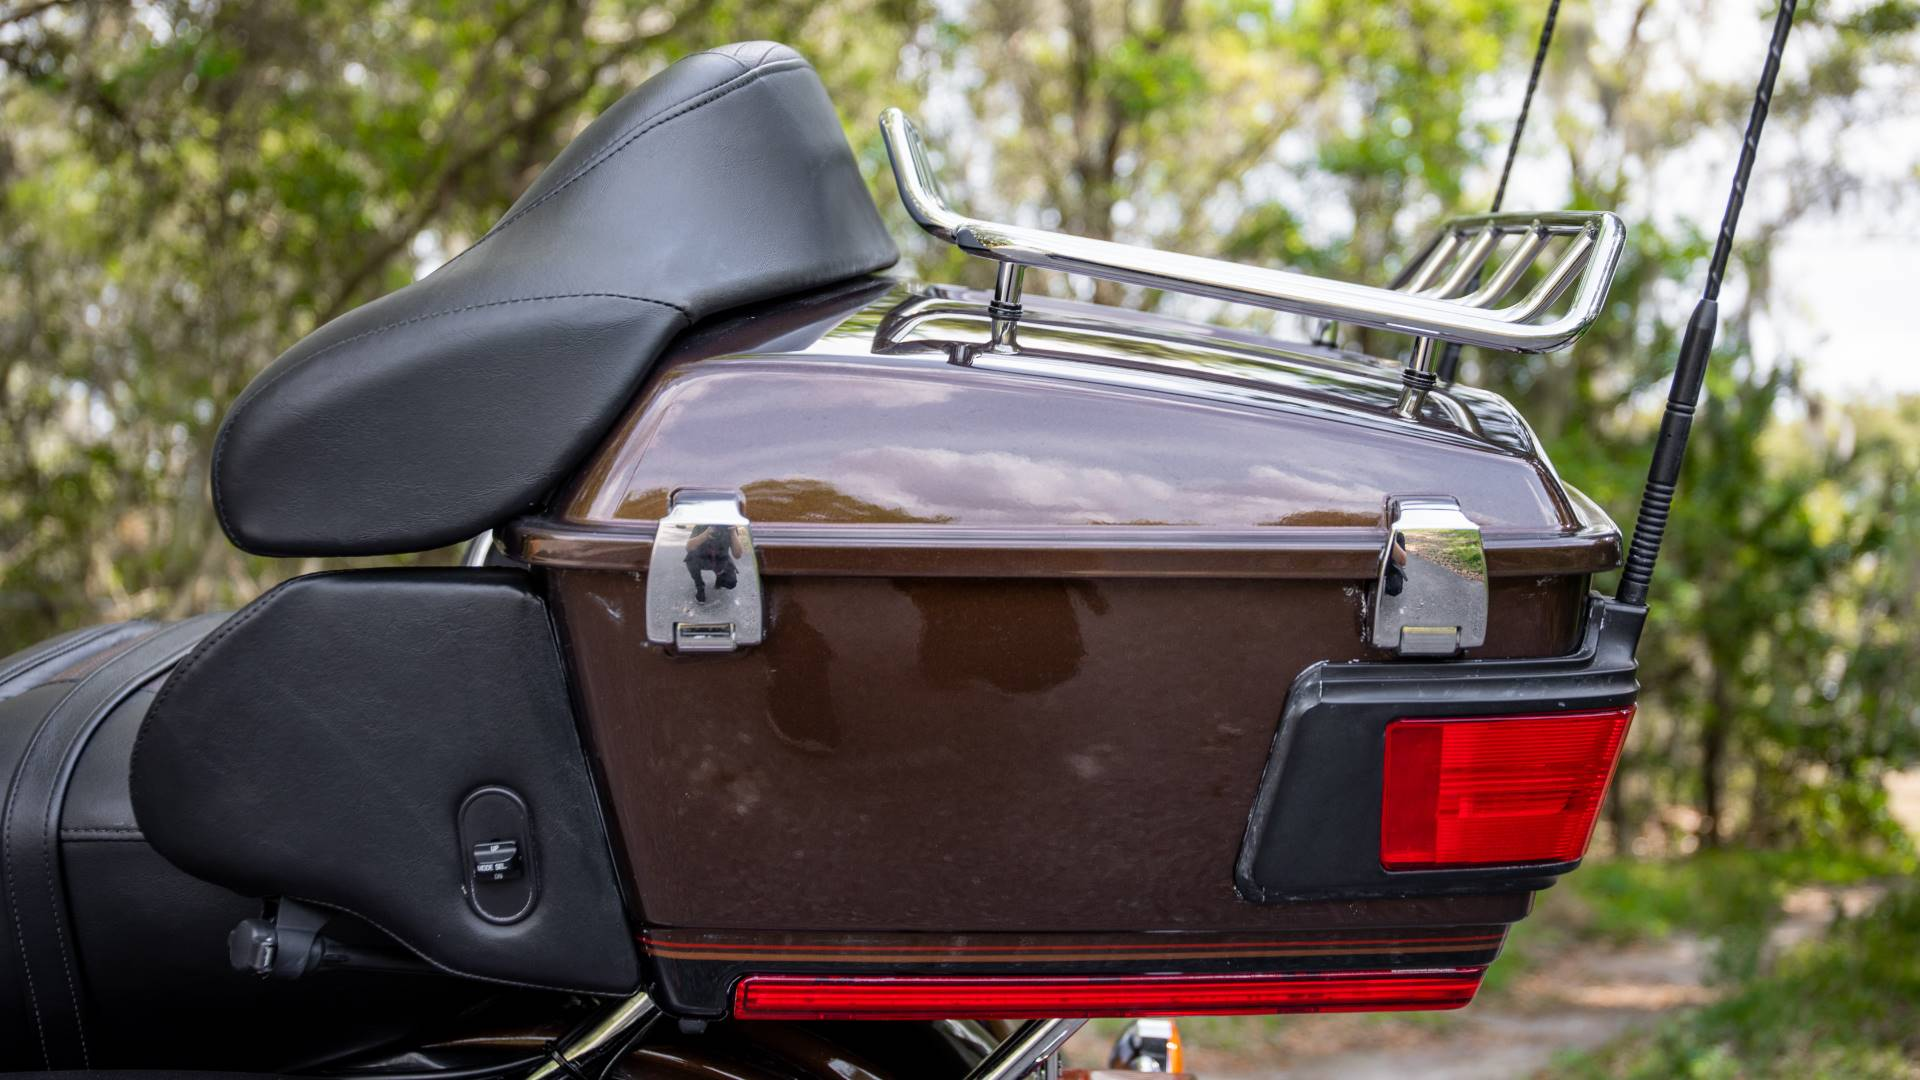 2013 Harley-Davidson Electra Glide® Ultra Limited 110th Anniversary Edition in Lakeland, Florida - Photo 33